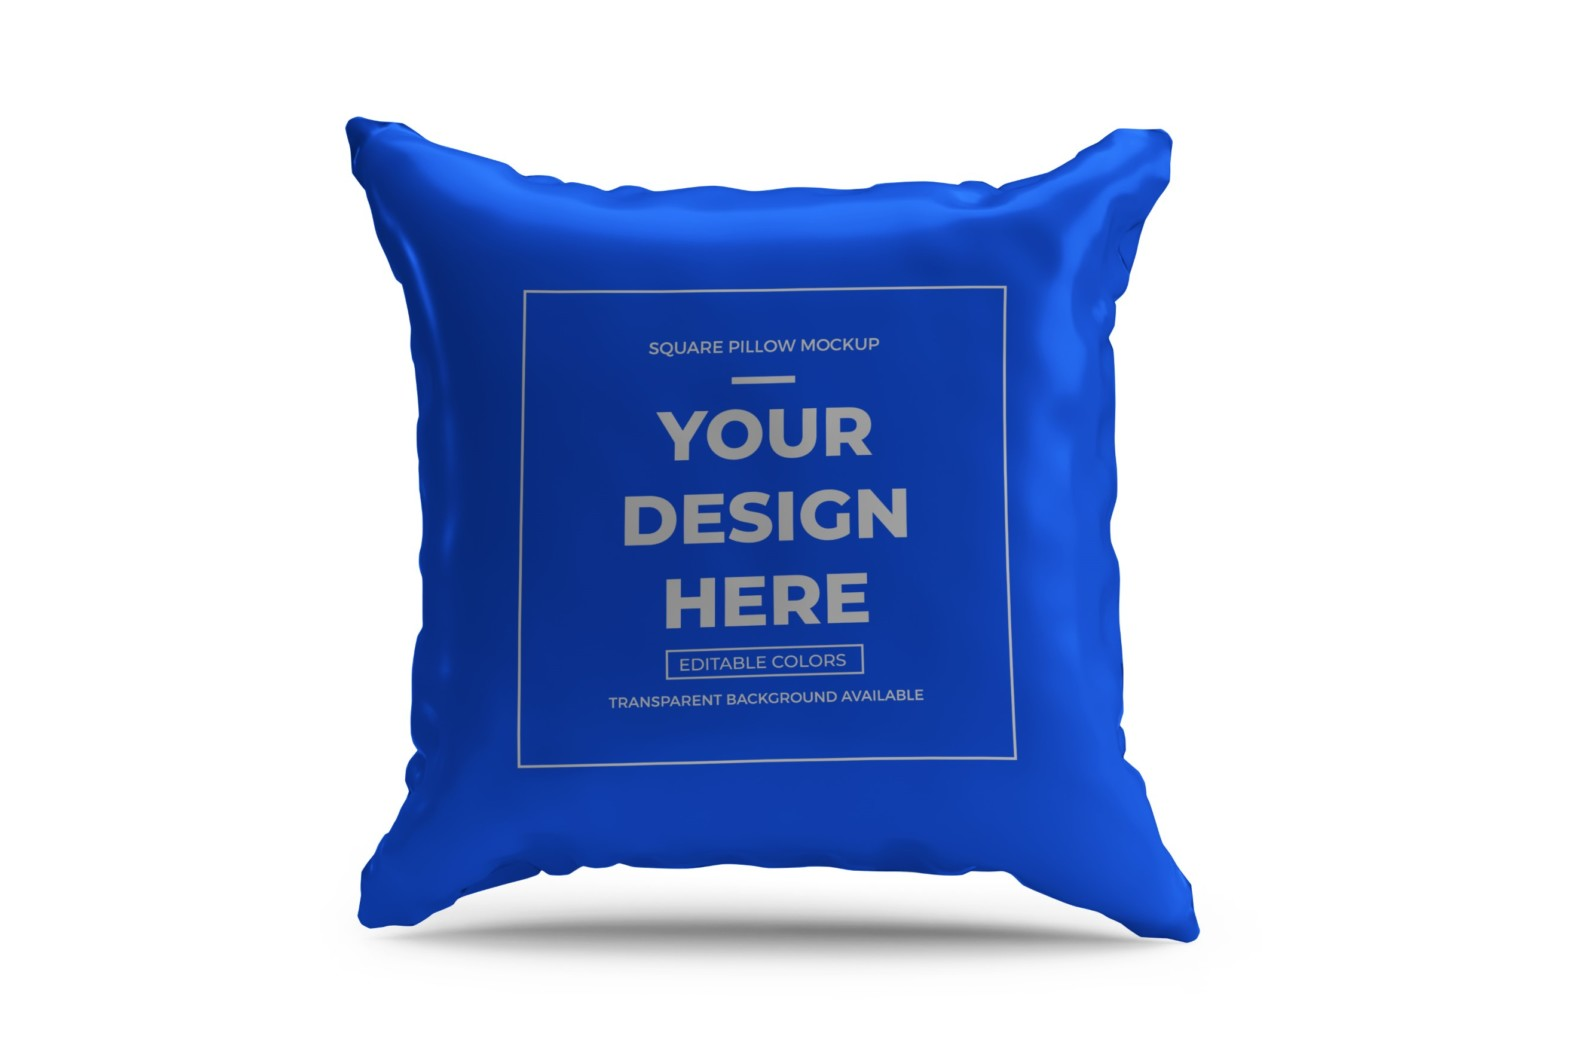 Square Pillow Mockup Template Bundle - 06 56 scaled -